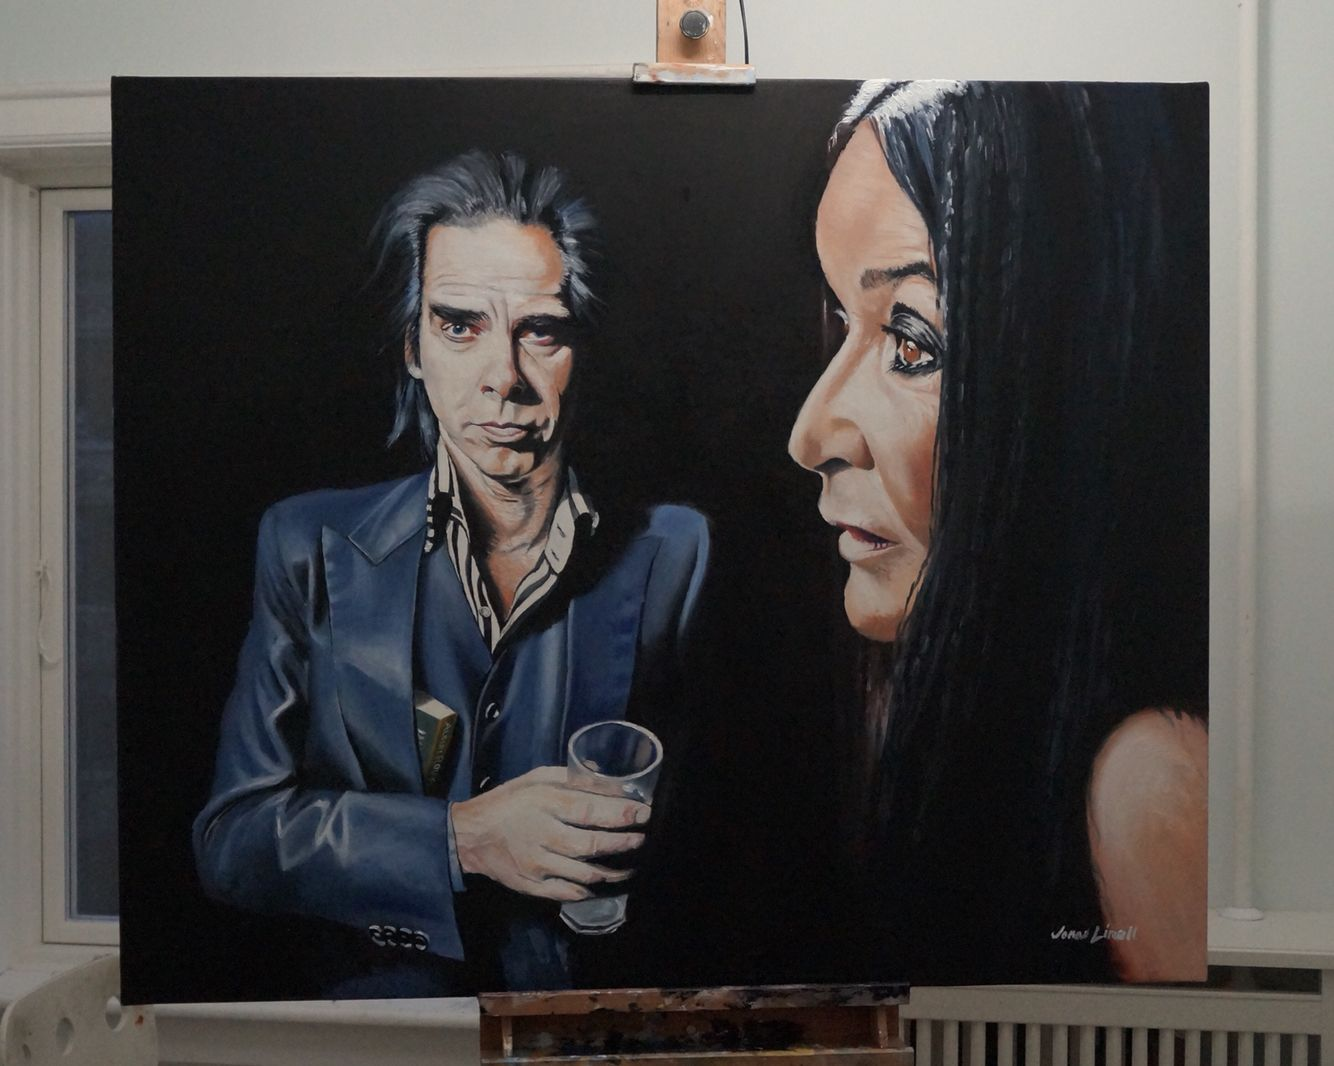 My portrait of Nick Cave and Annisette Koppel, painted as a commission by Tom Ingvardssn. Oil on canvas, 120 x 100 cm. #nick #cave #art #painting #jonas #linell #oil #canvas #portrait #artist